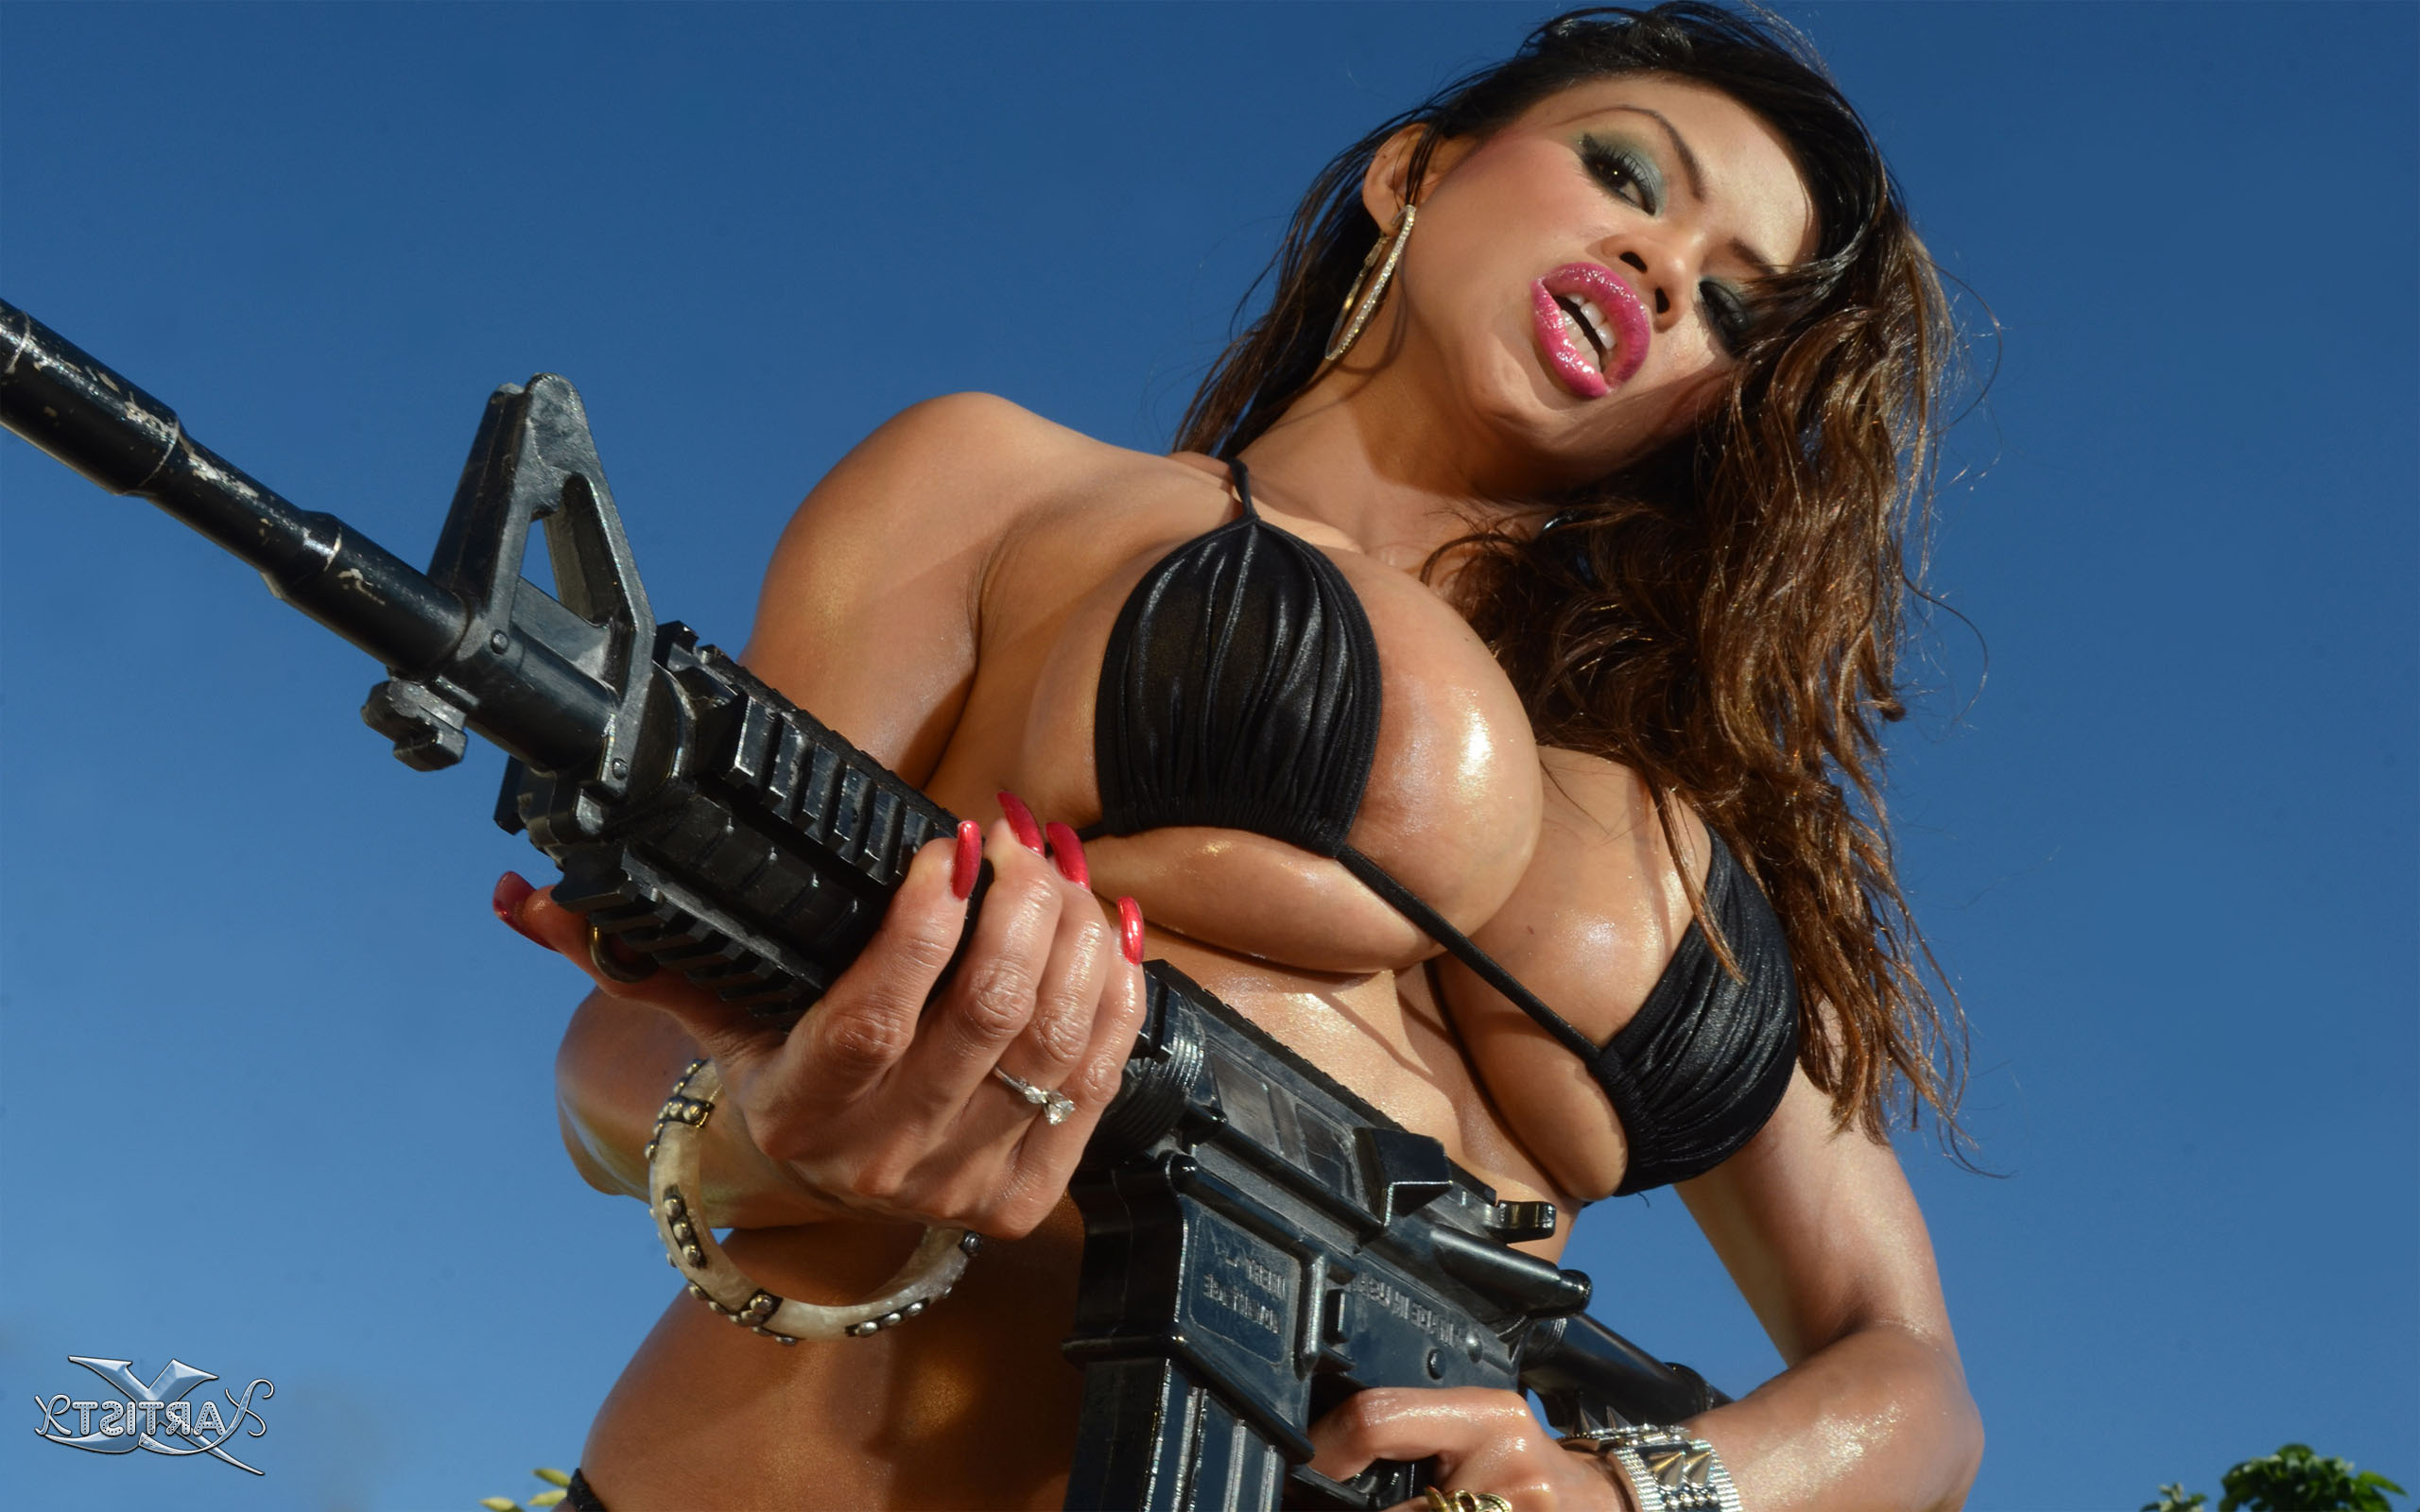 guns Sexy with nude girls